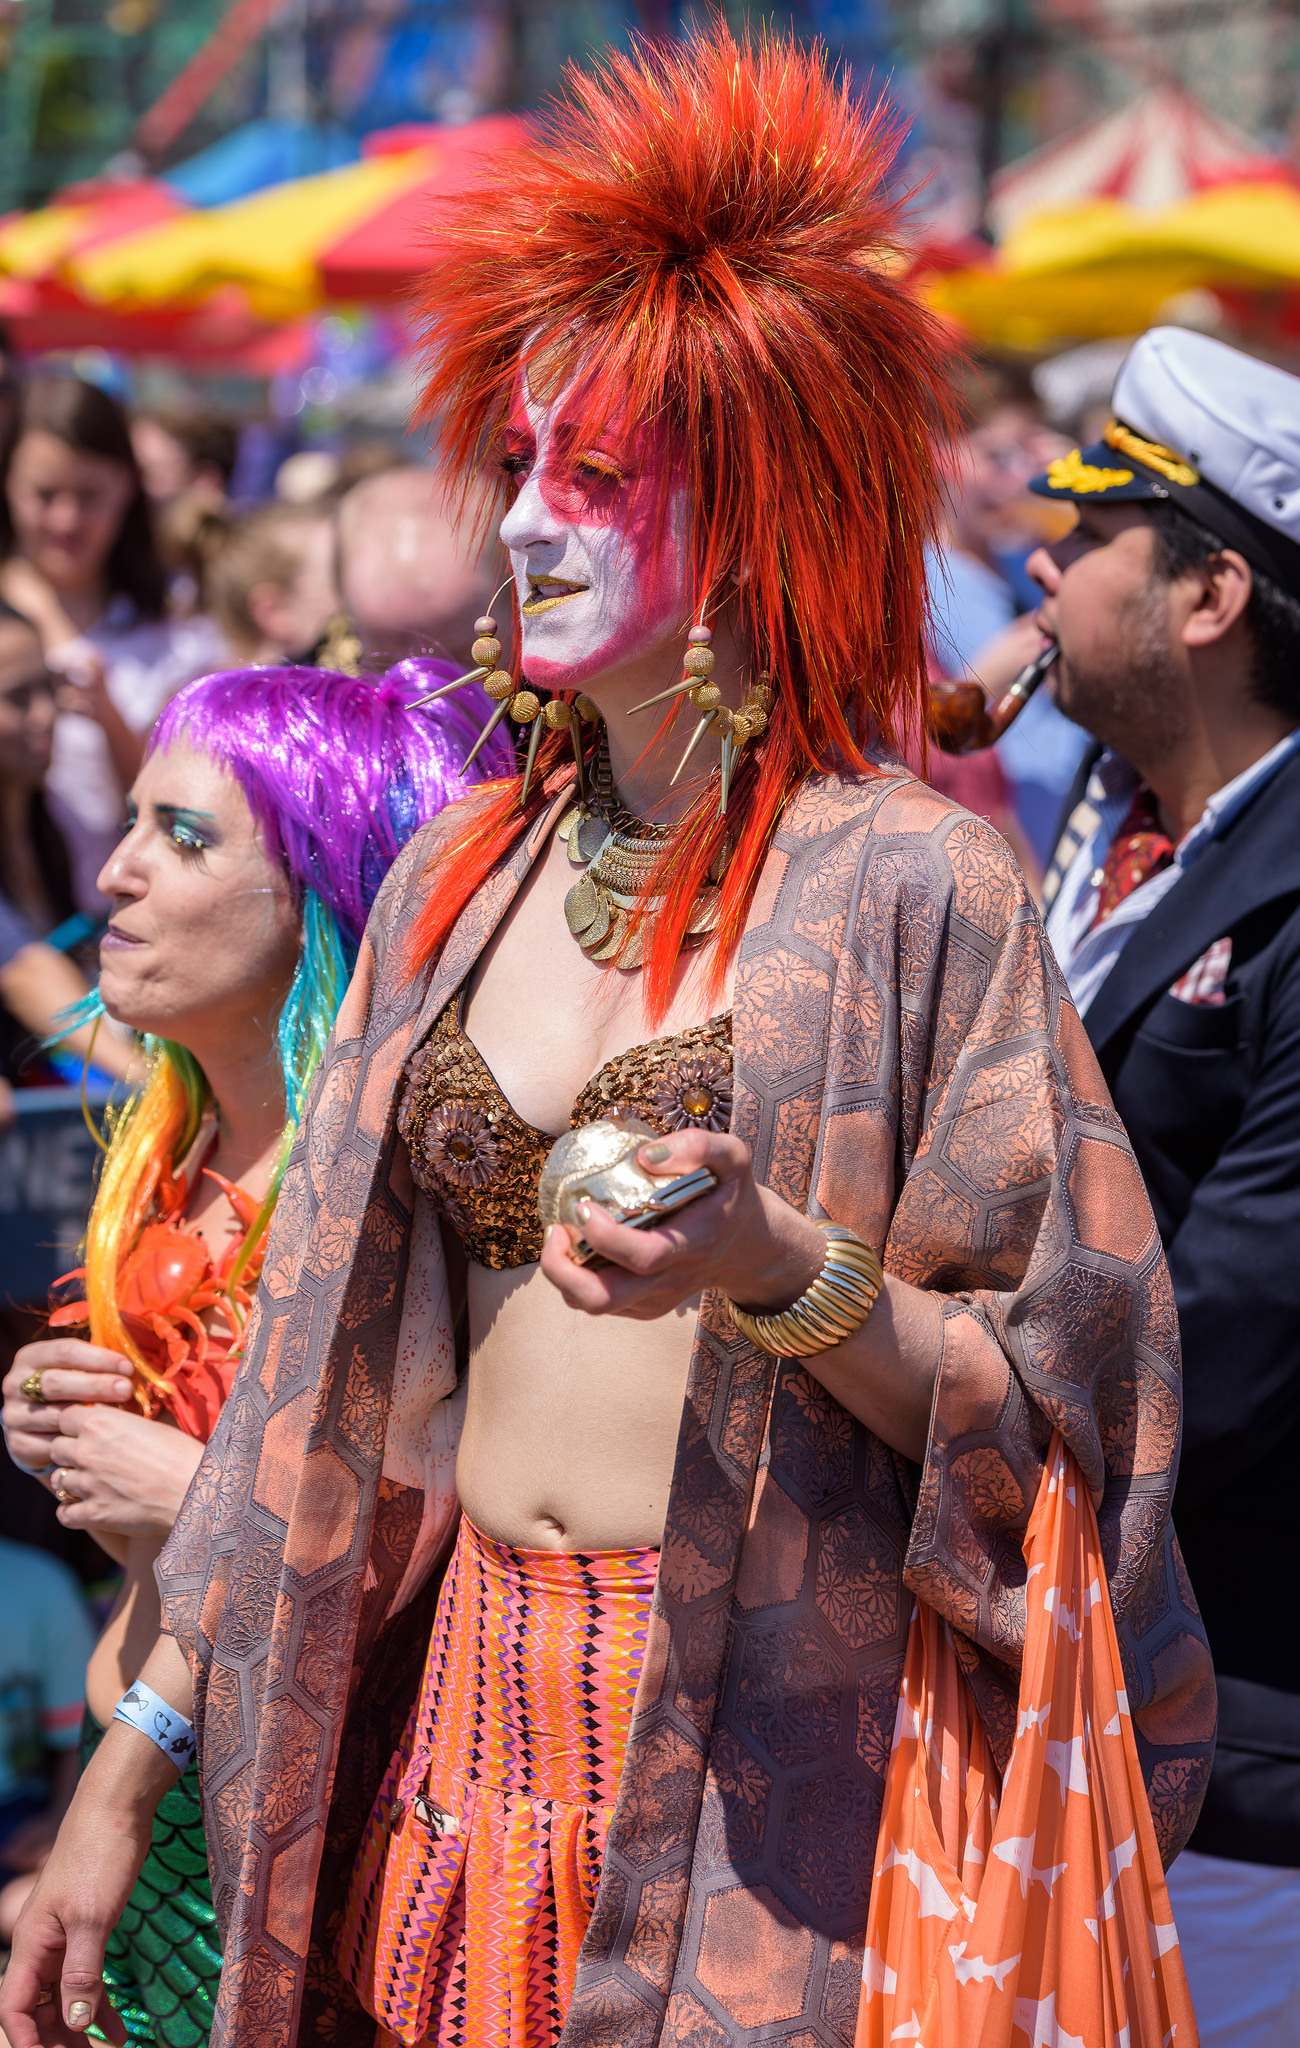 mermaid parade3 2016 Coney Island Mermaid Parade in NYC